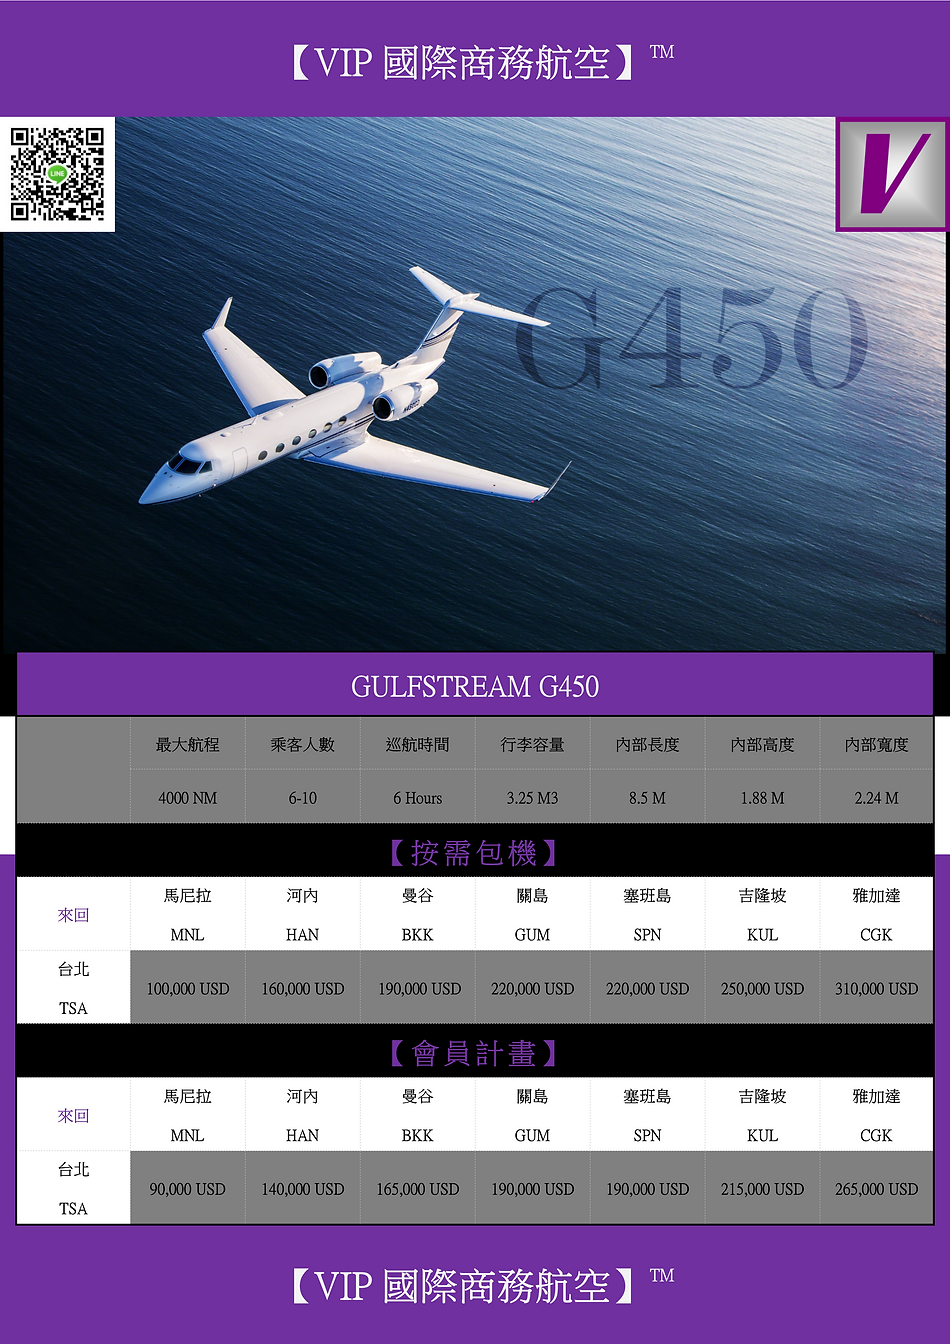 VIP GLOBAL GULFSTREAM G450 DM V3.png